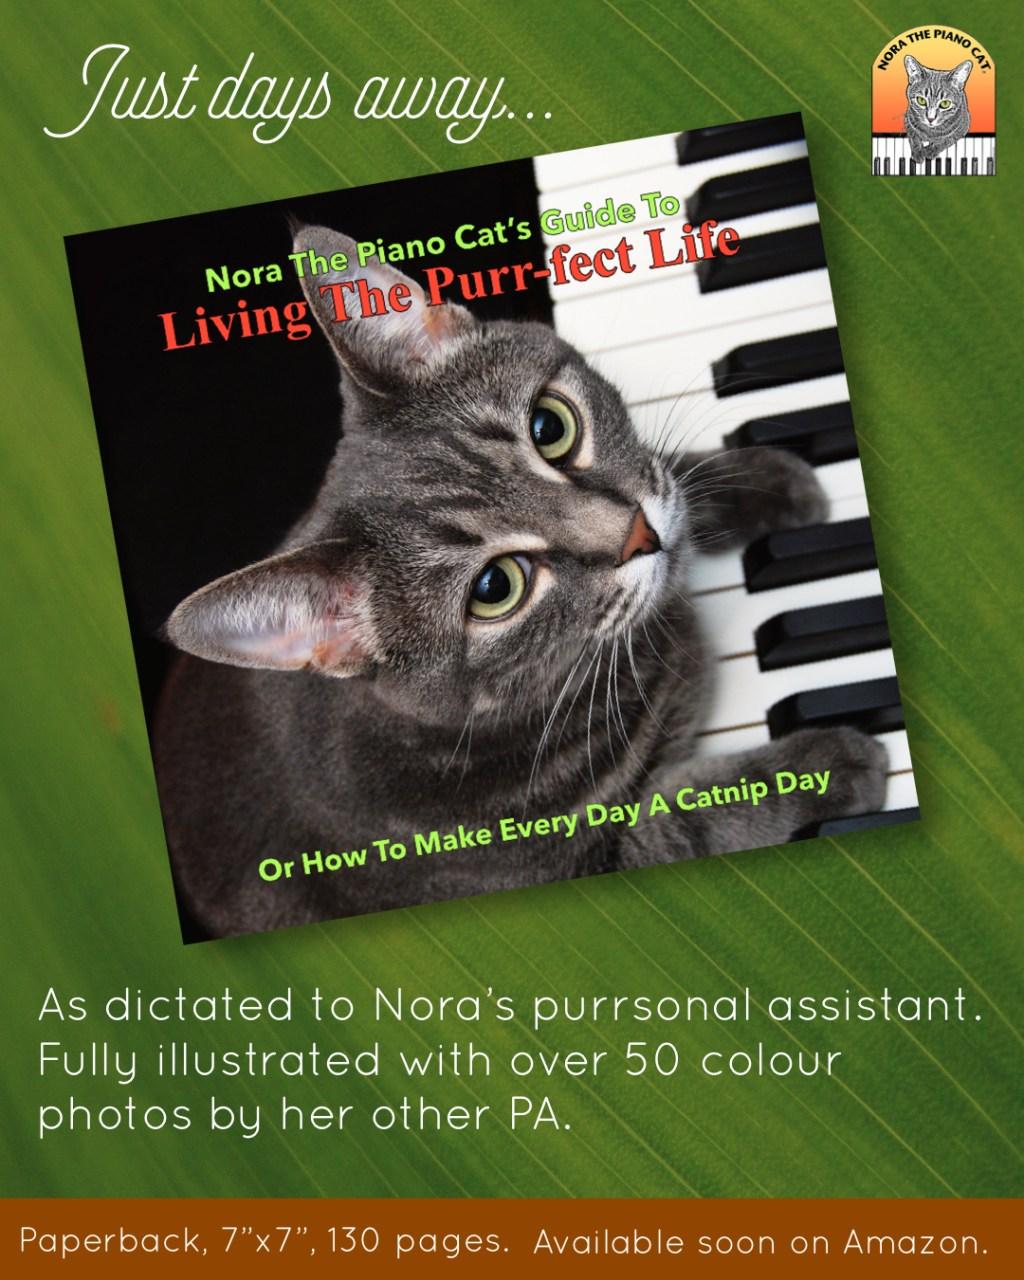 New book from Nora The Piano Cat.